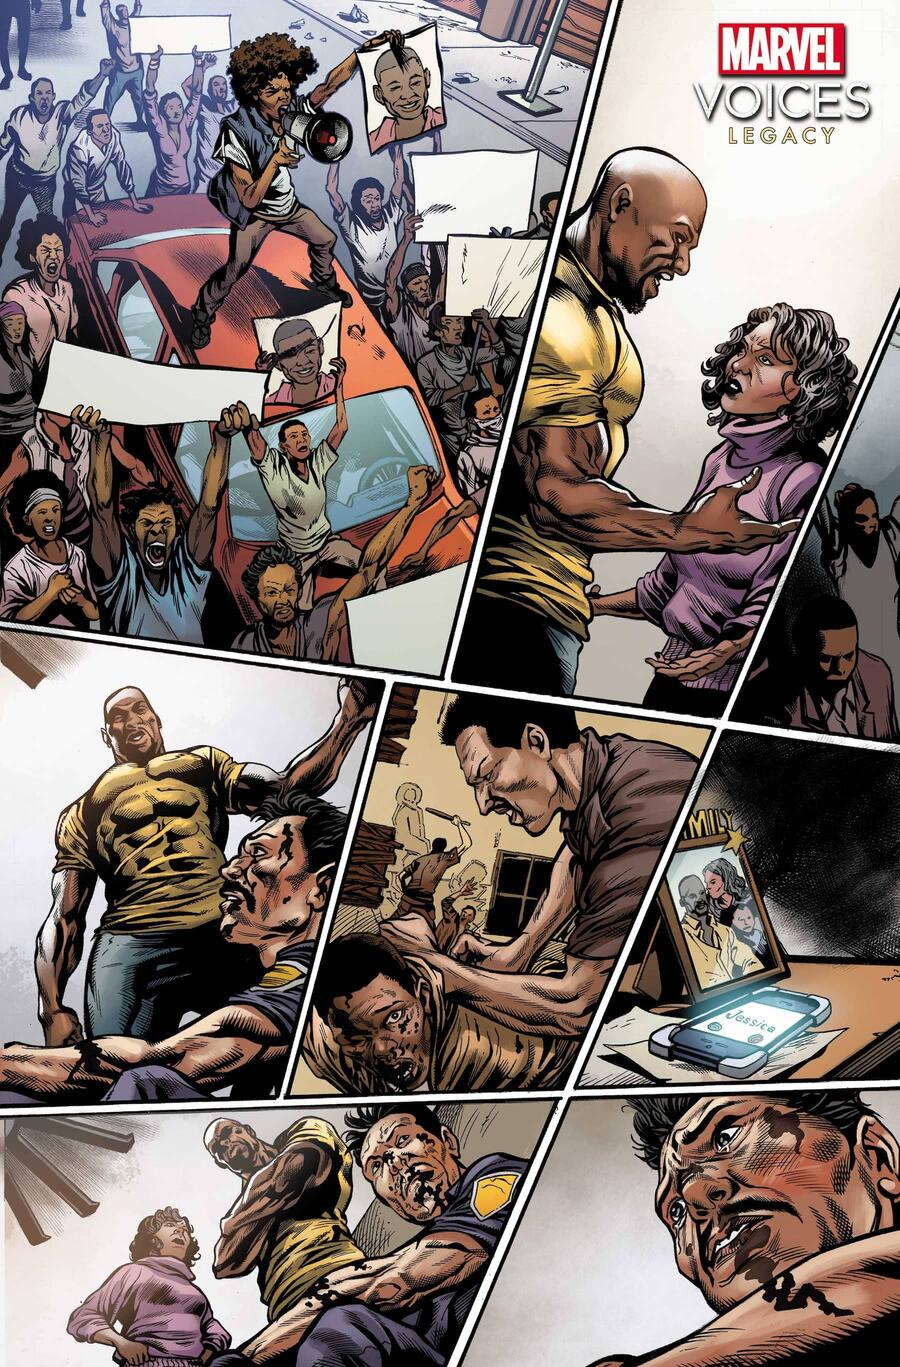 MARVEL'S VOICES: LEGACY #1 preview art by Sean Damien Hill, inks by Le Beau Underwood, colors by Rachelle Rosenberg